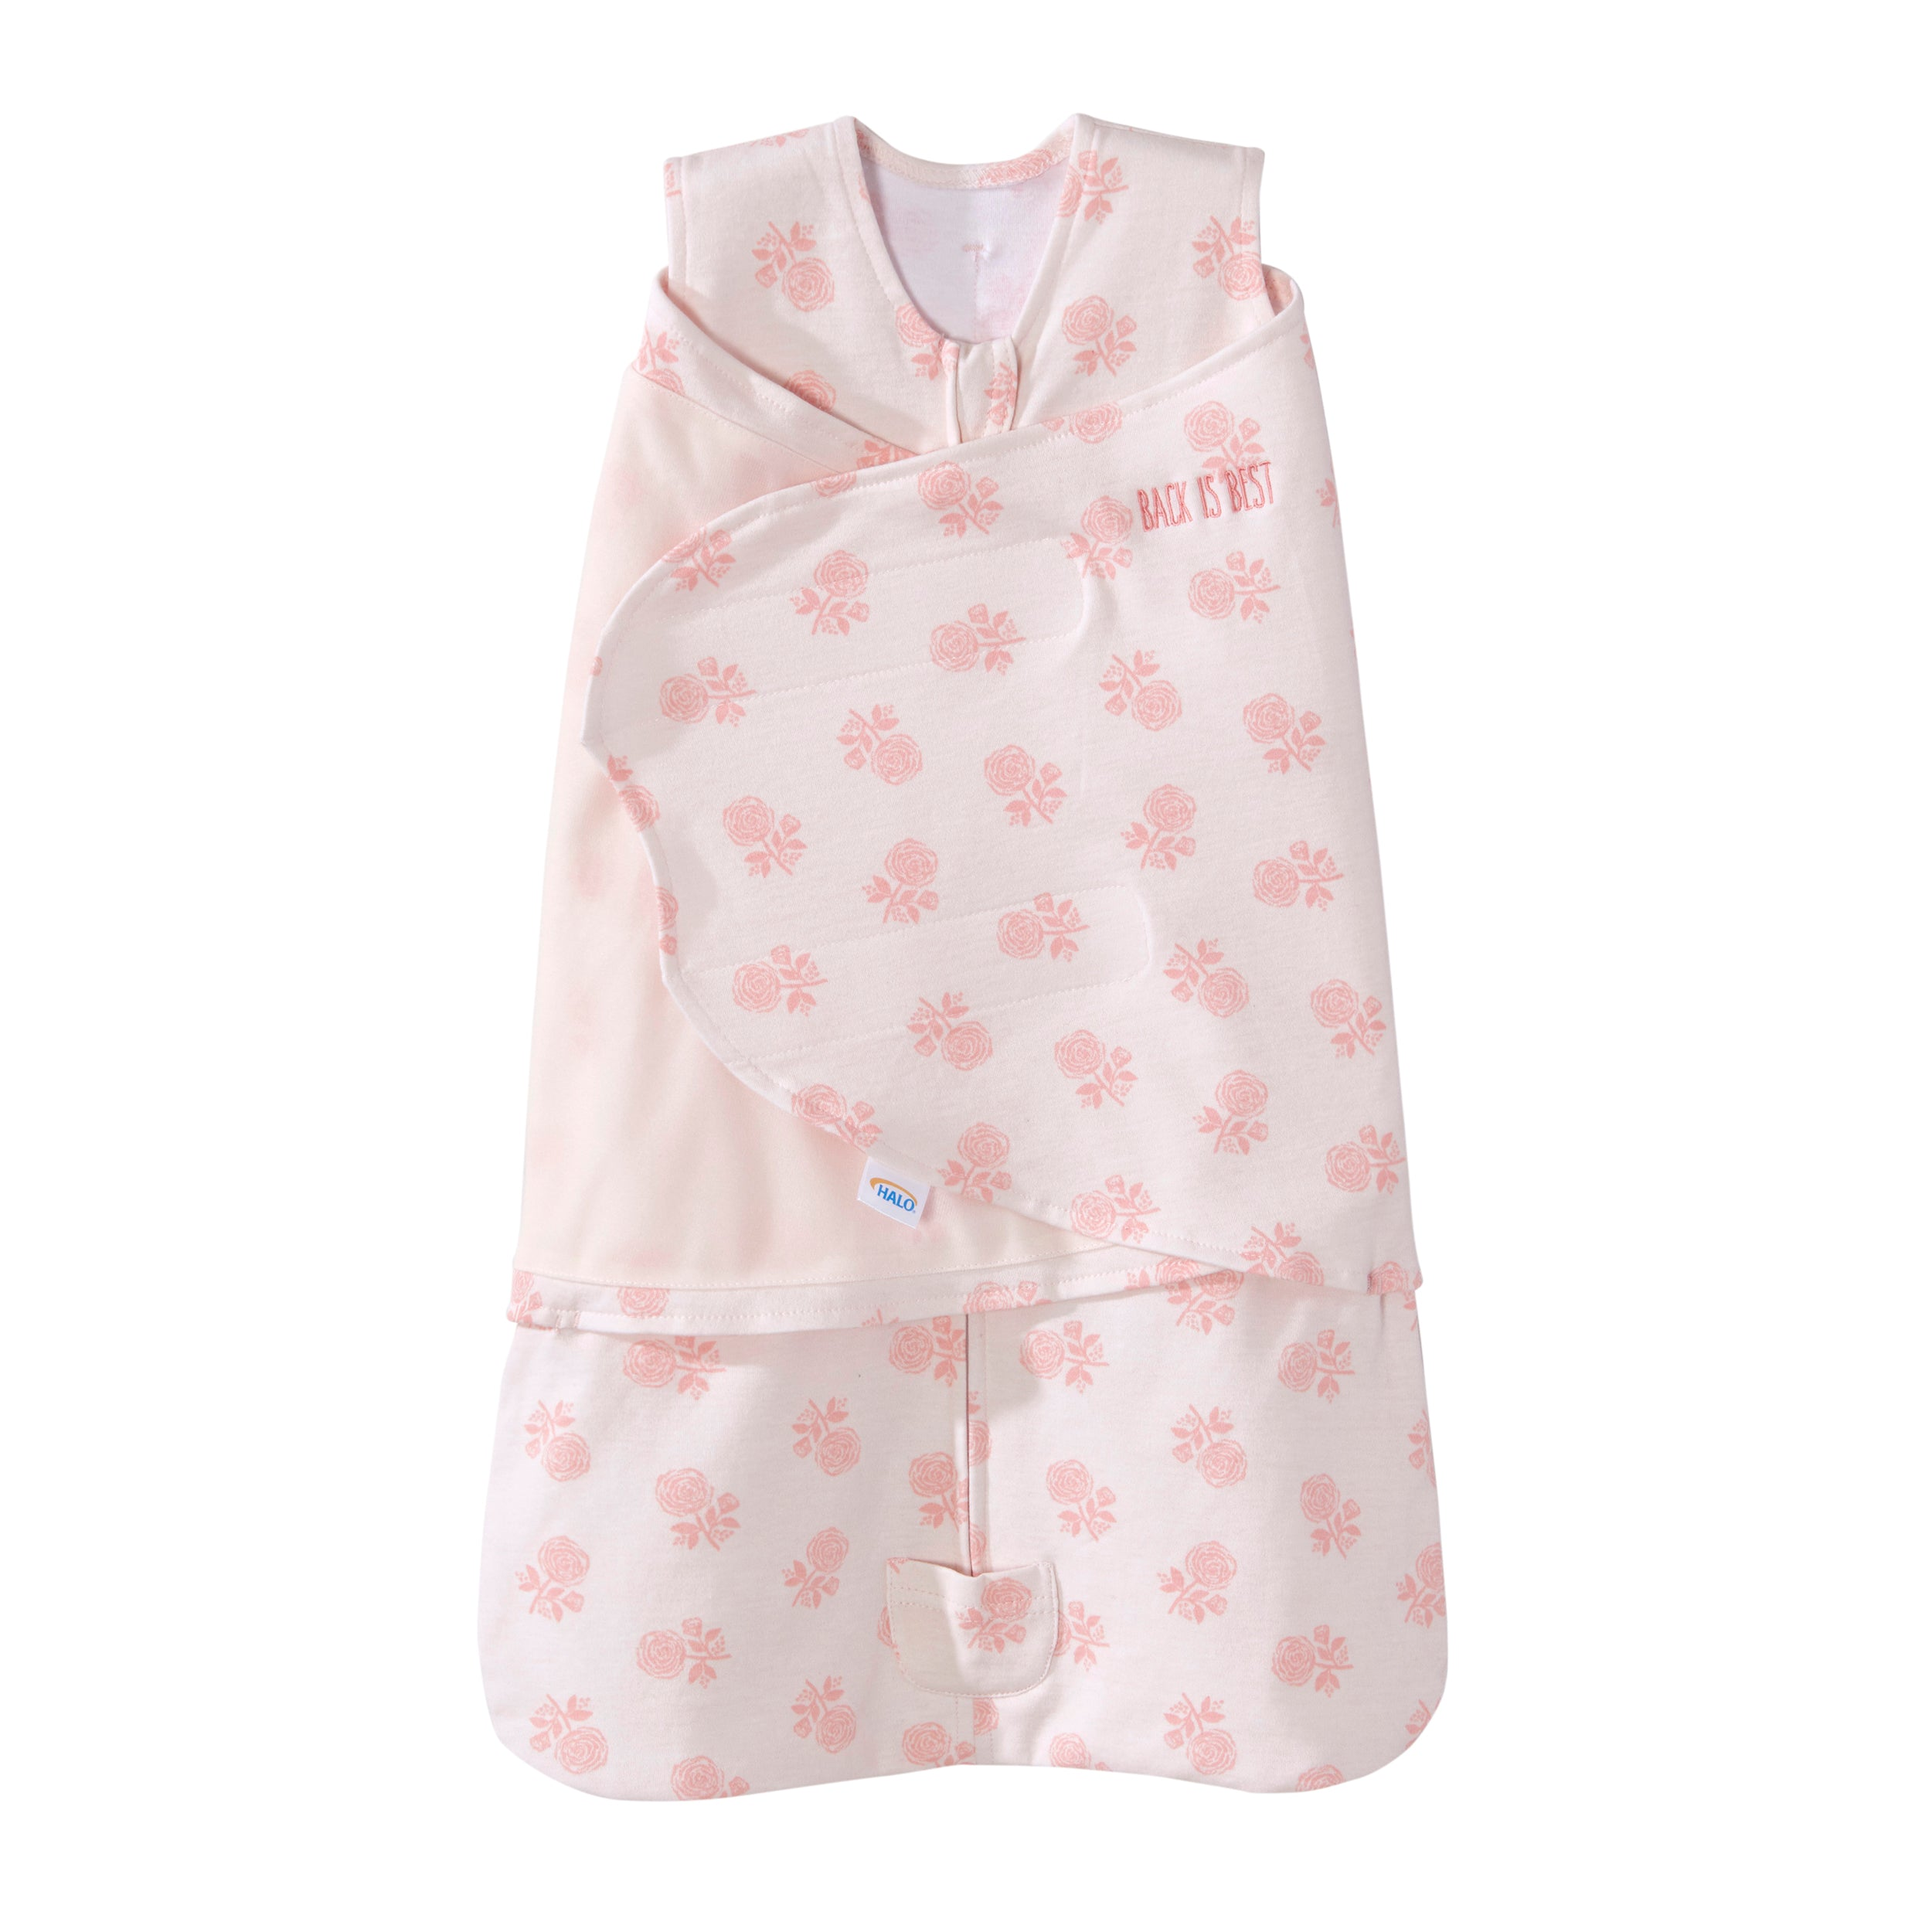 Halo Sleepsack Swaddle – Pink X's And O's